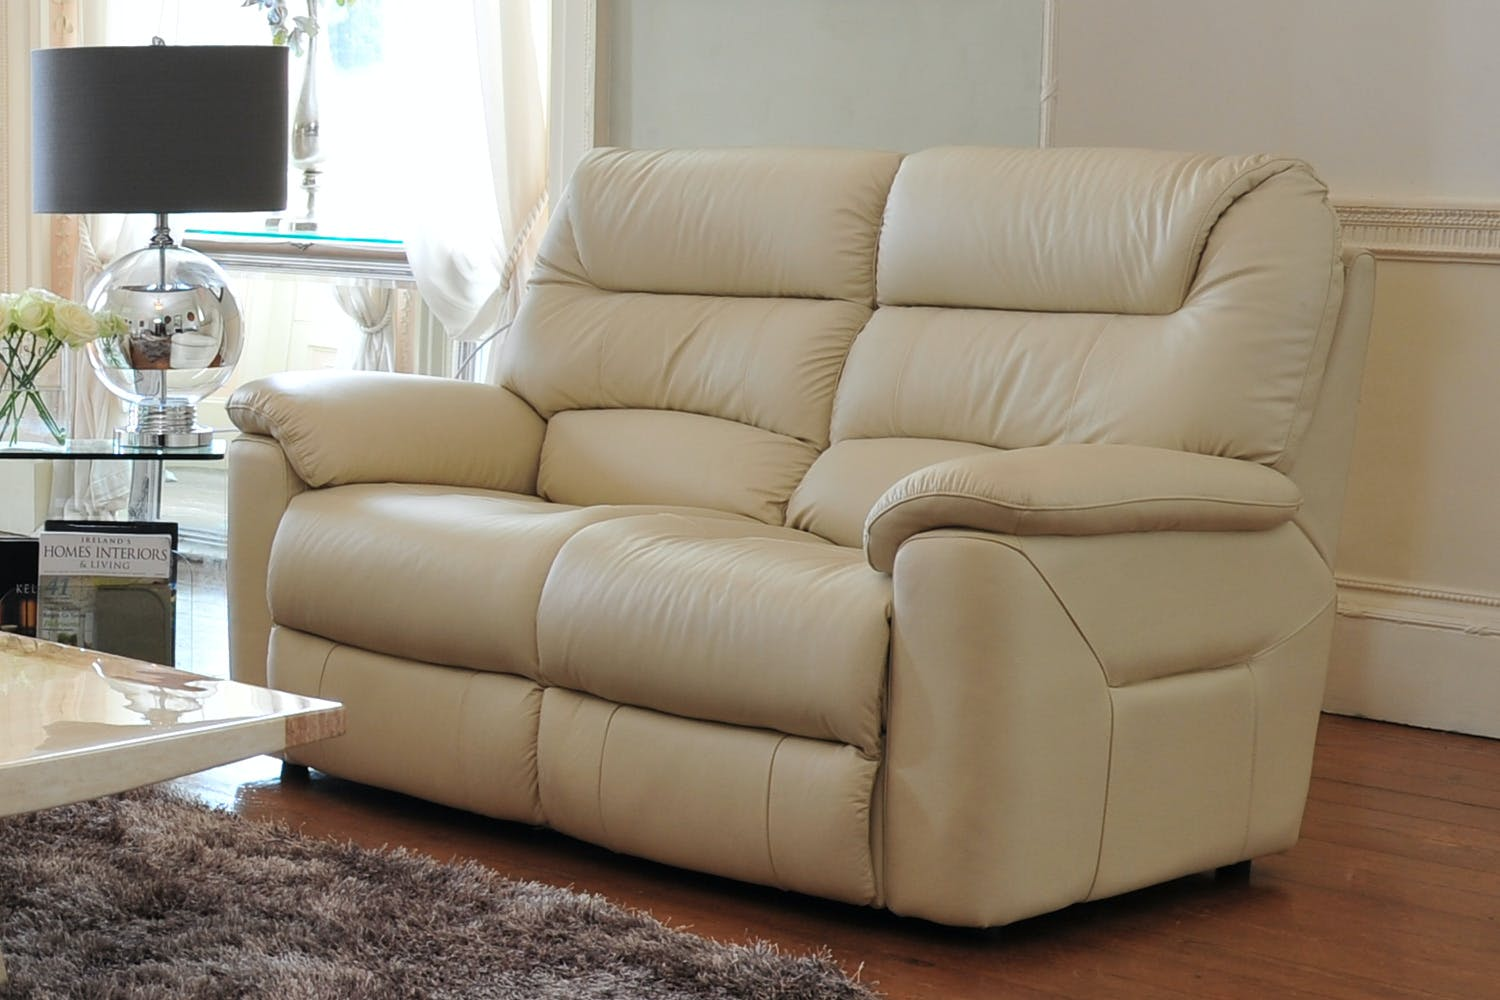 Manhattan 2 seater lounge sofa shop at harvey norman for Bedroom 2 seater sofa